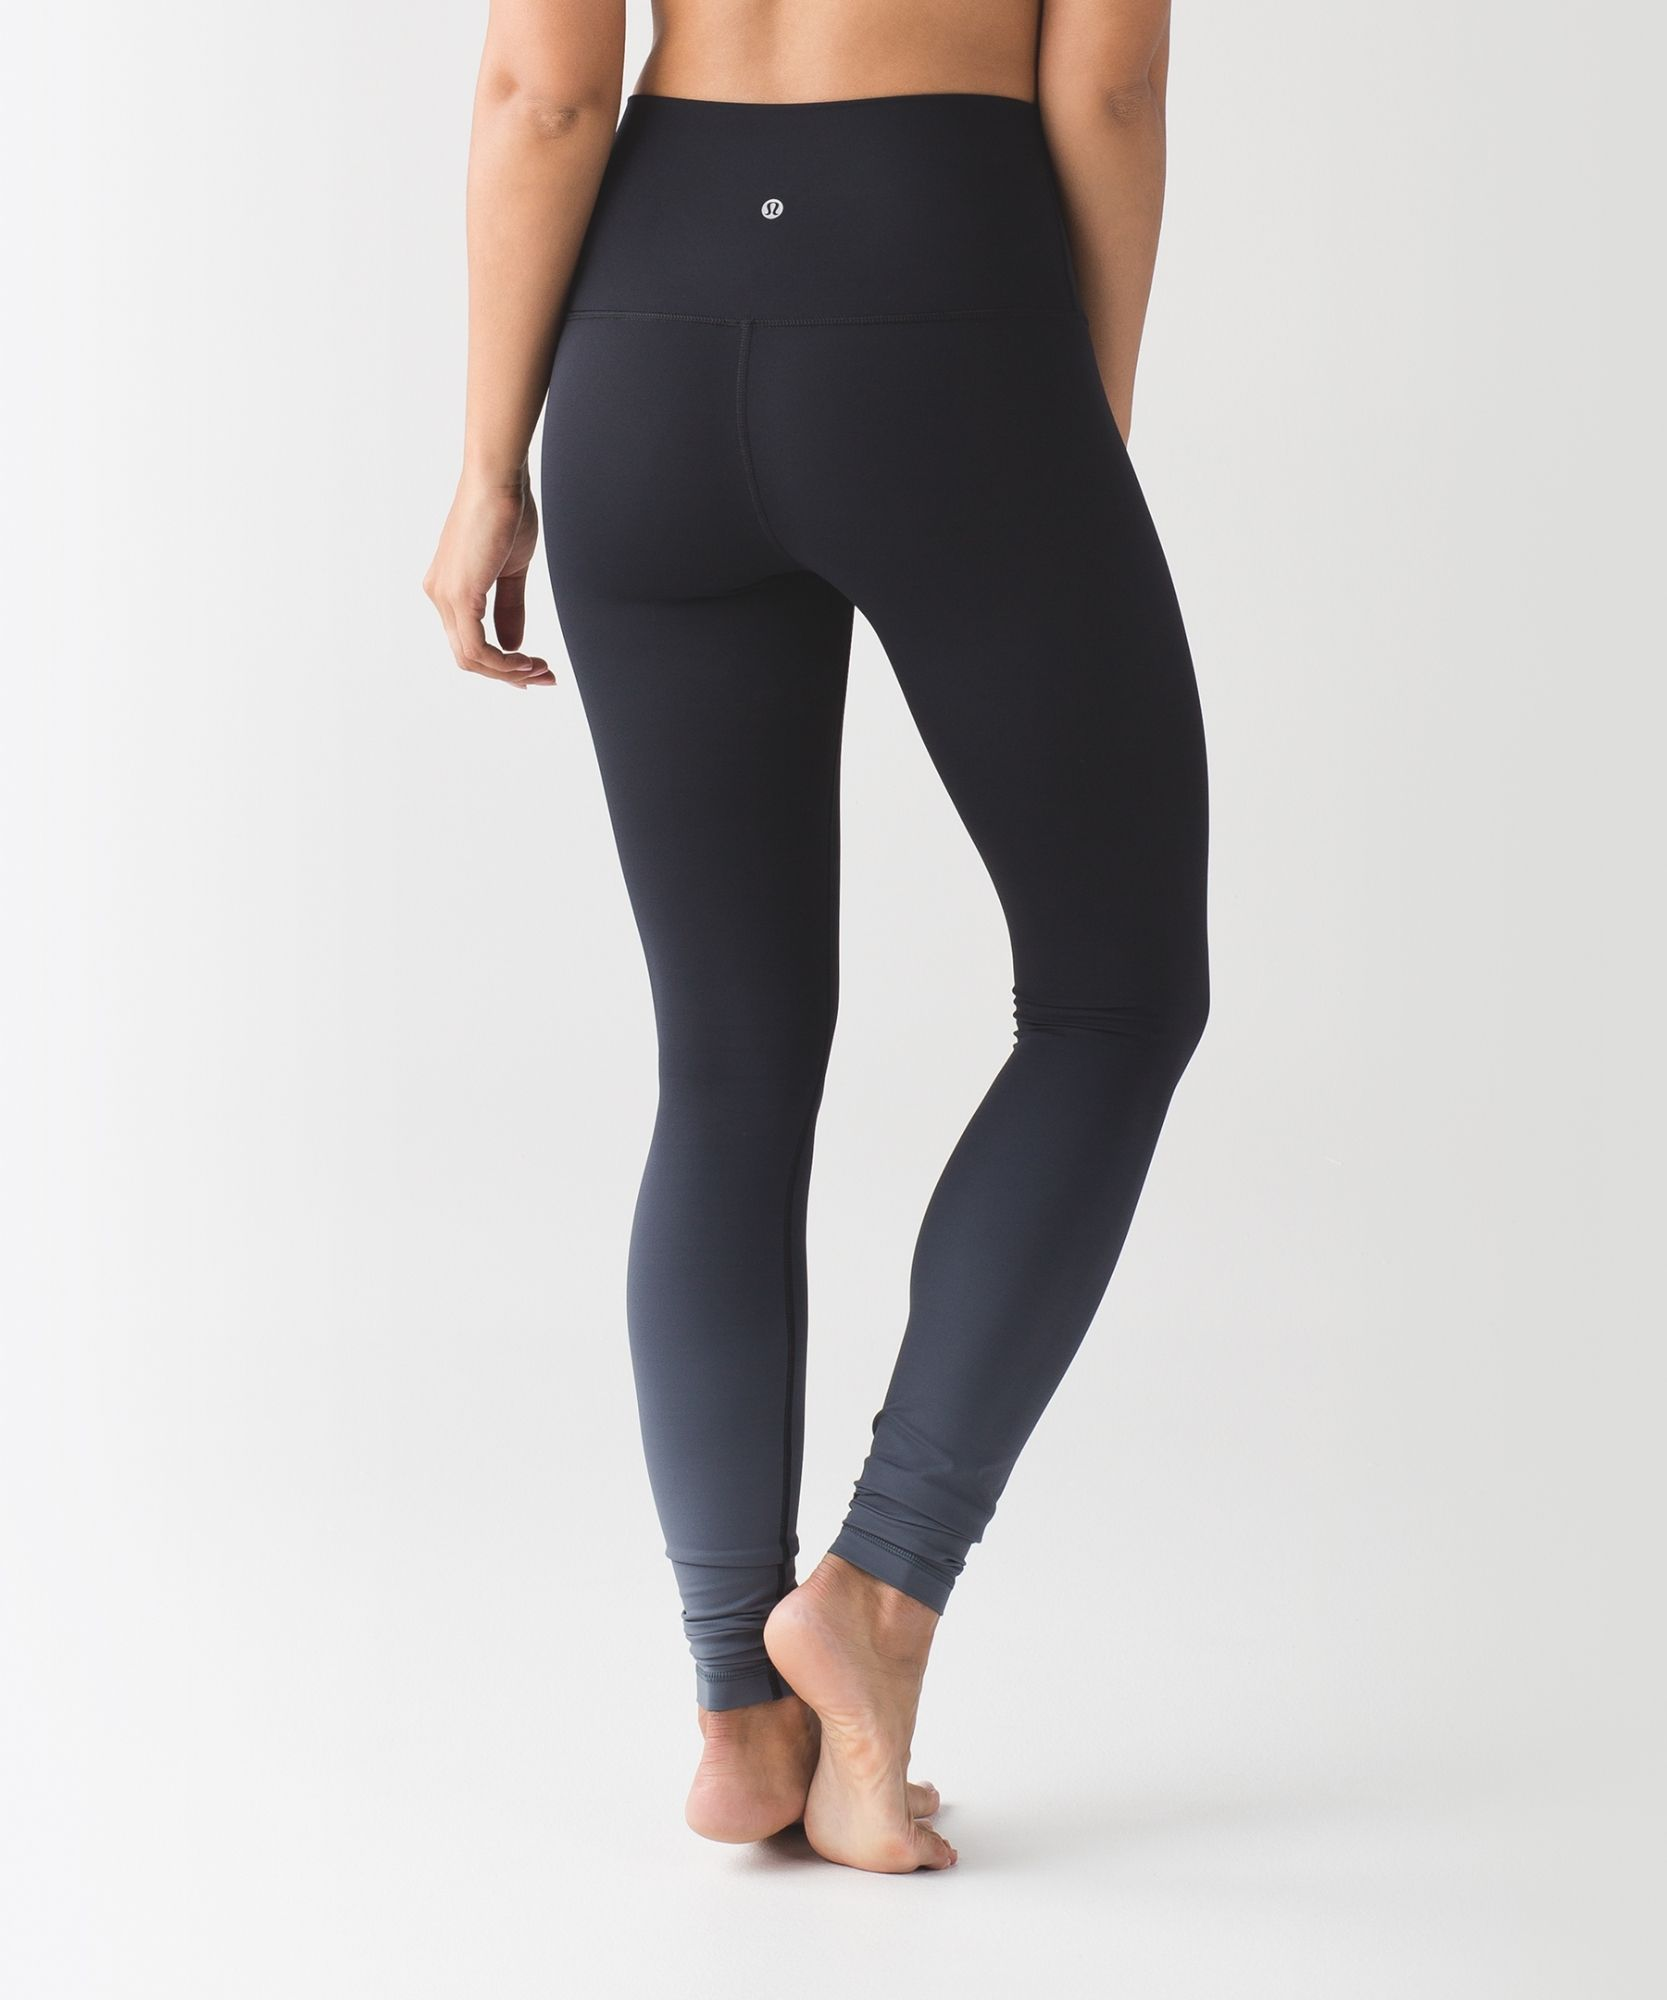 af6e8204dd08e These versatile, high-rise pants were designed to fit like a second skin—